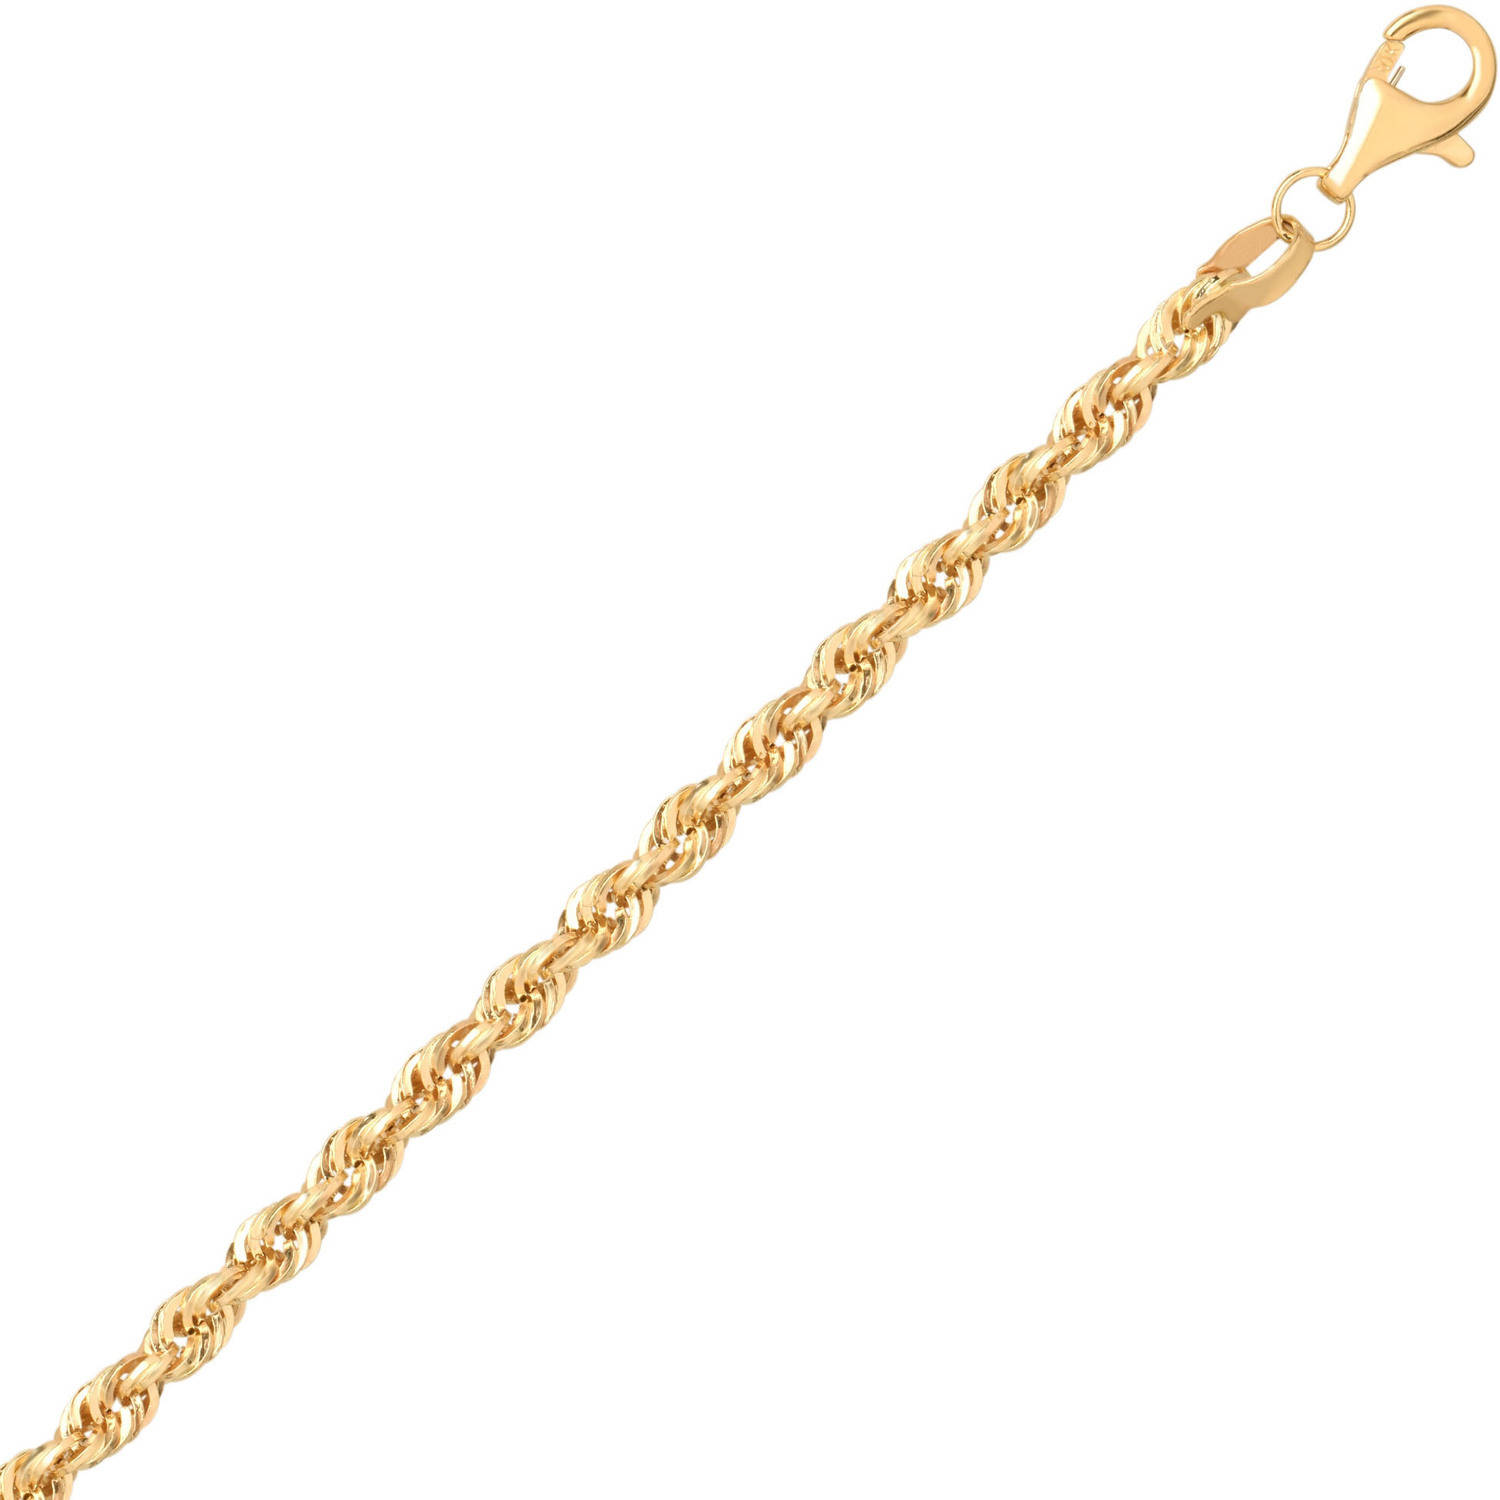 Simply Gold Women's 10KT Yellow Gold 2.9MM Rope Chain, 24